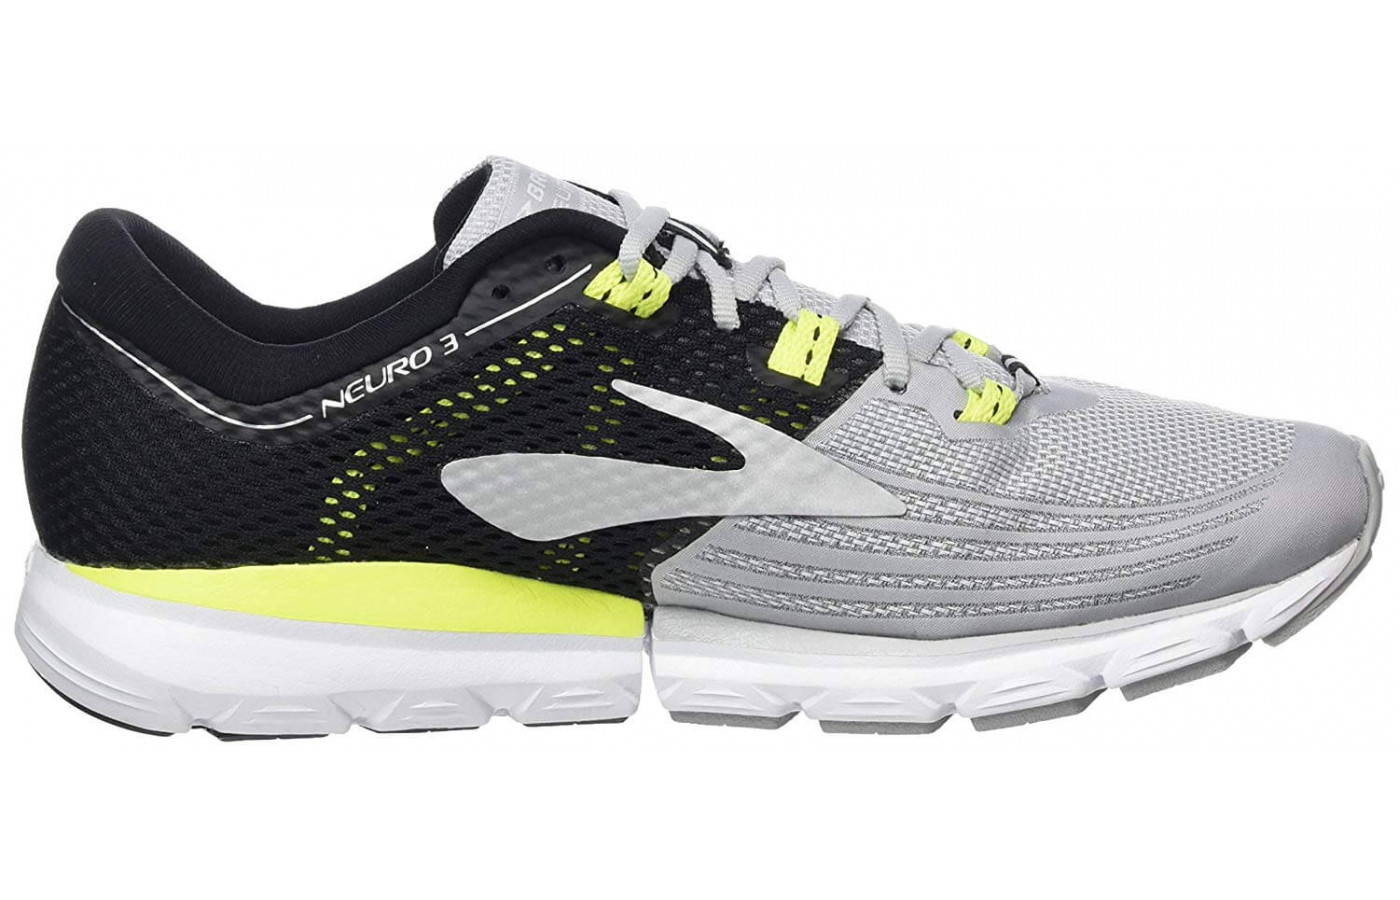 Brooks Neuro 3 Medial